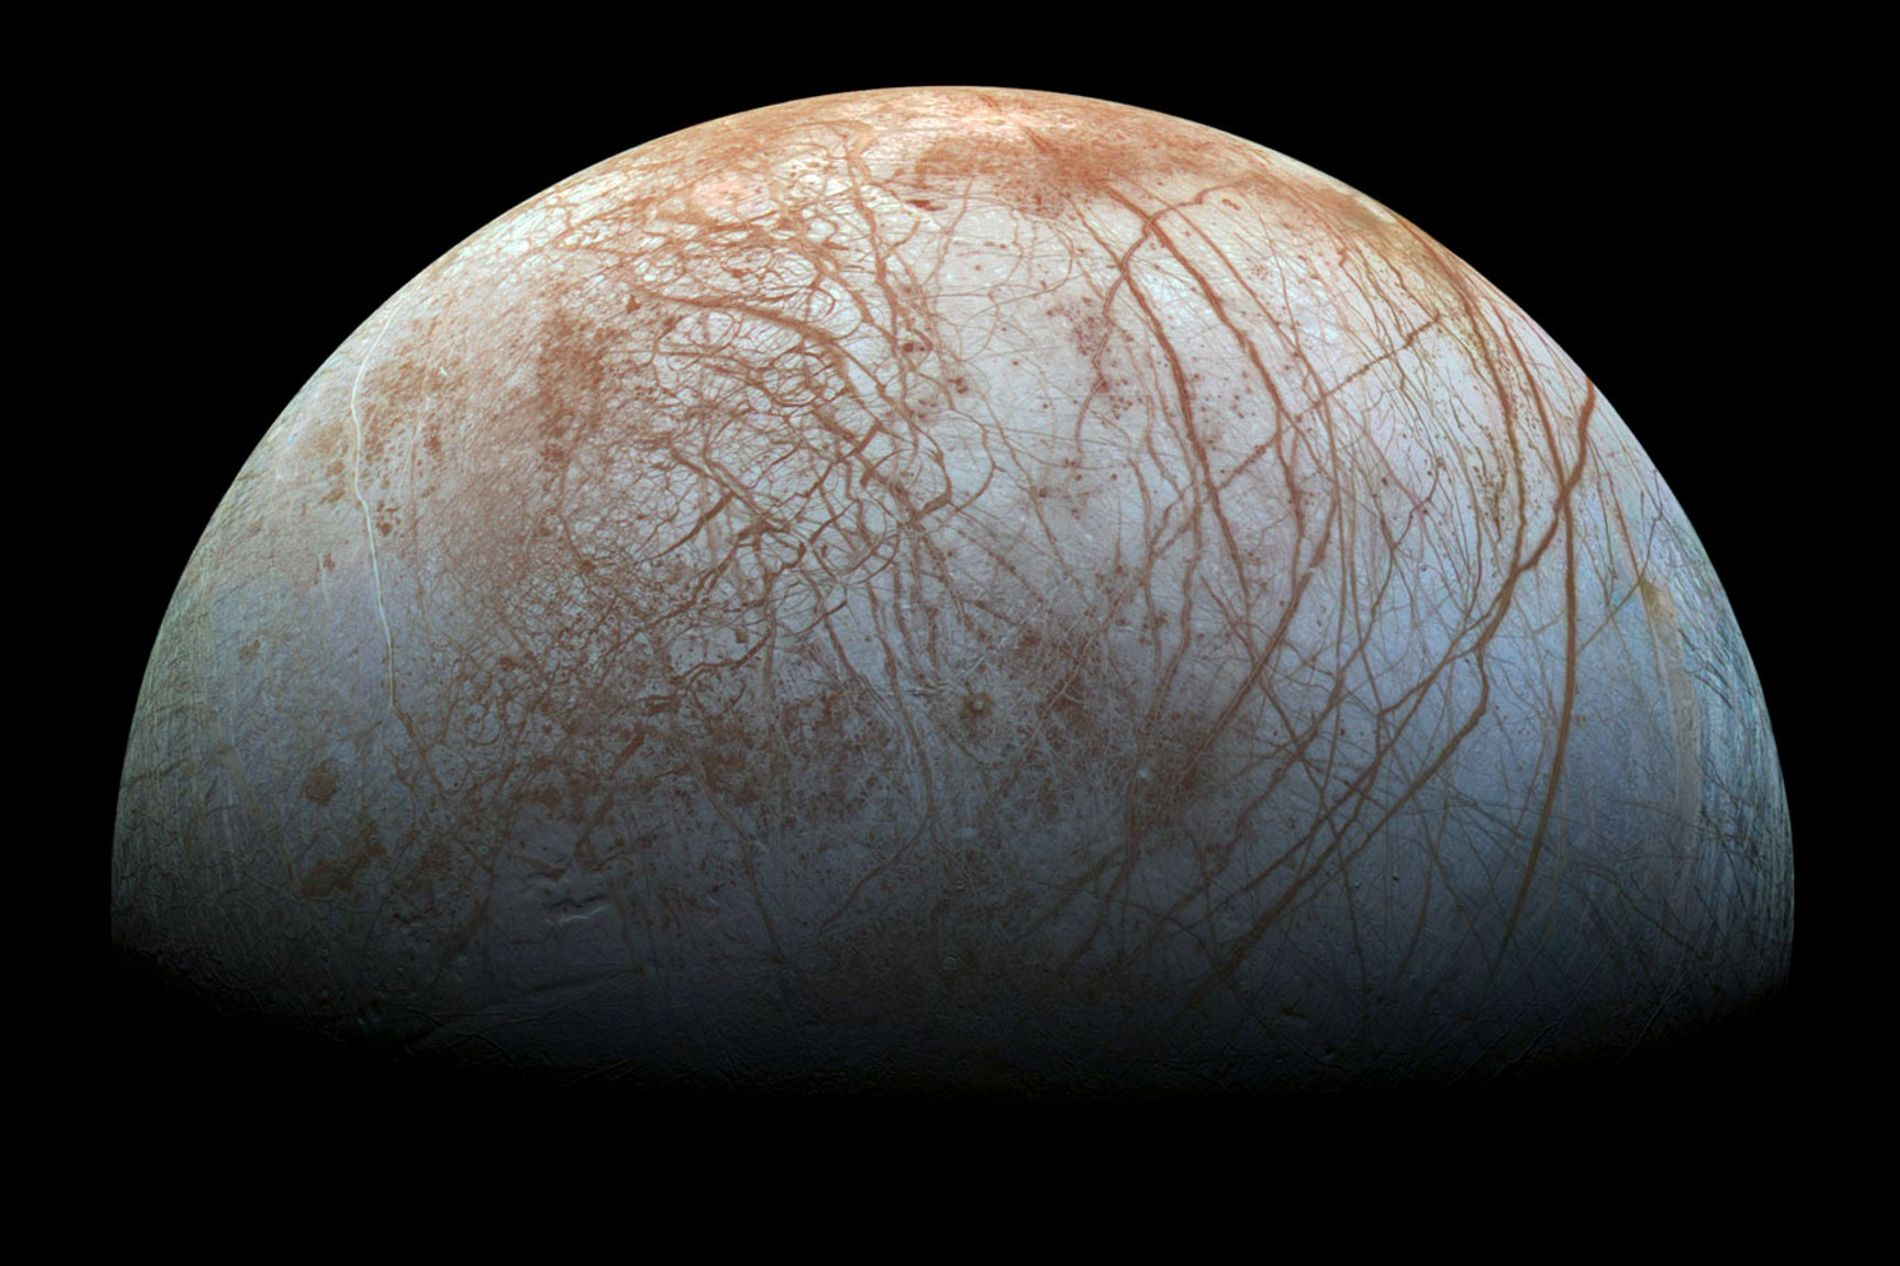 Jupiter's moon Europa is covered with a thick icy crust thought to cover a vast water ...